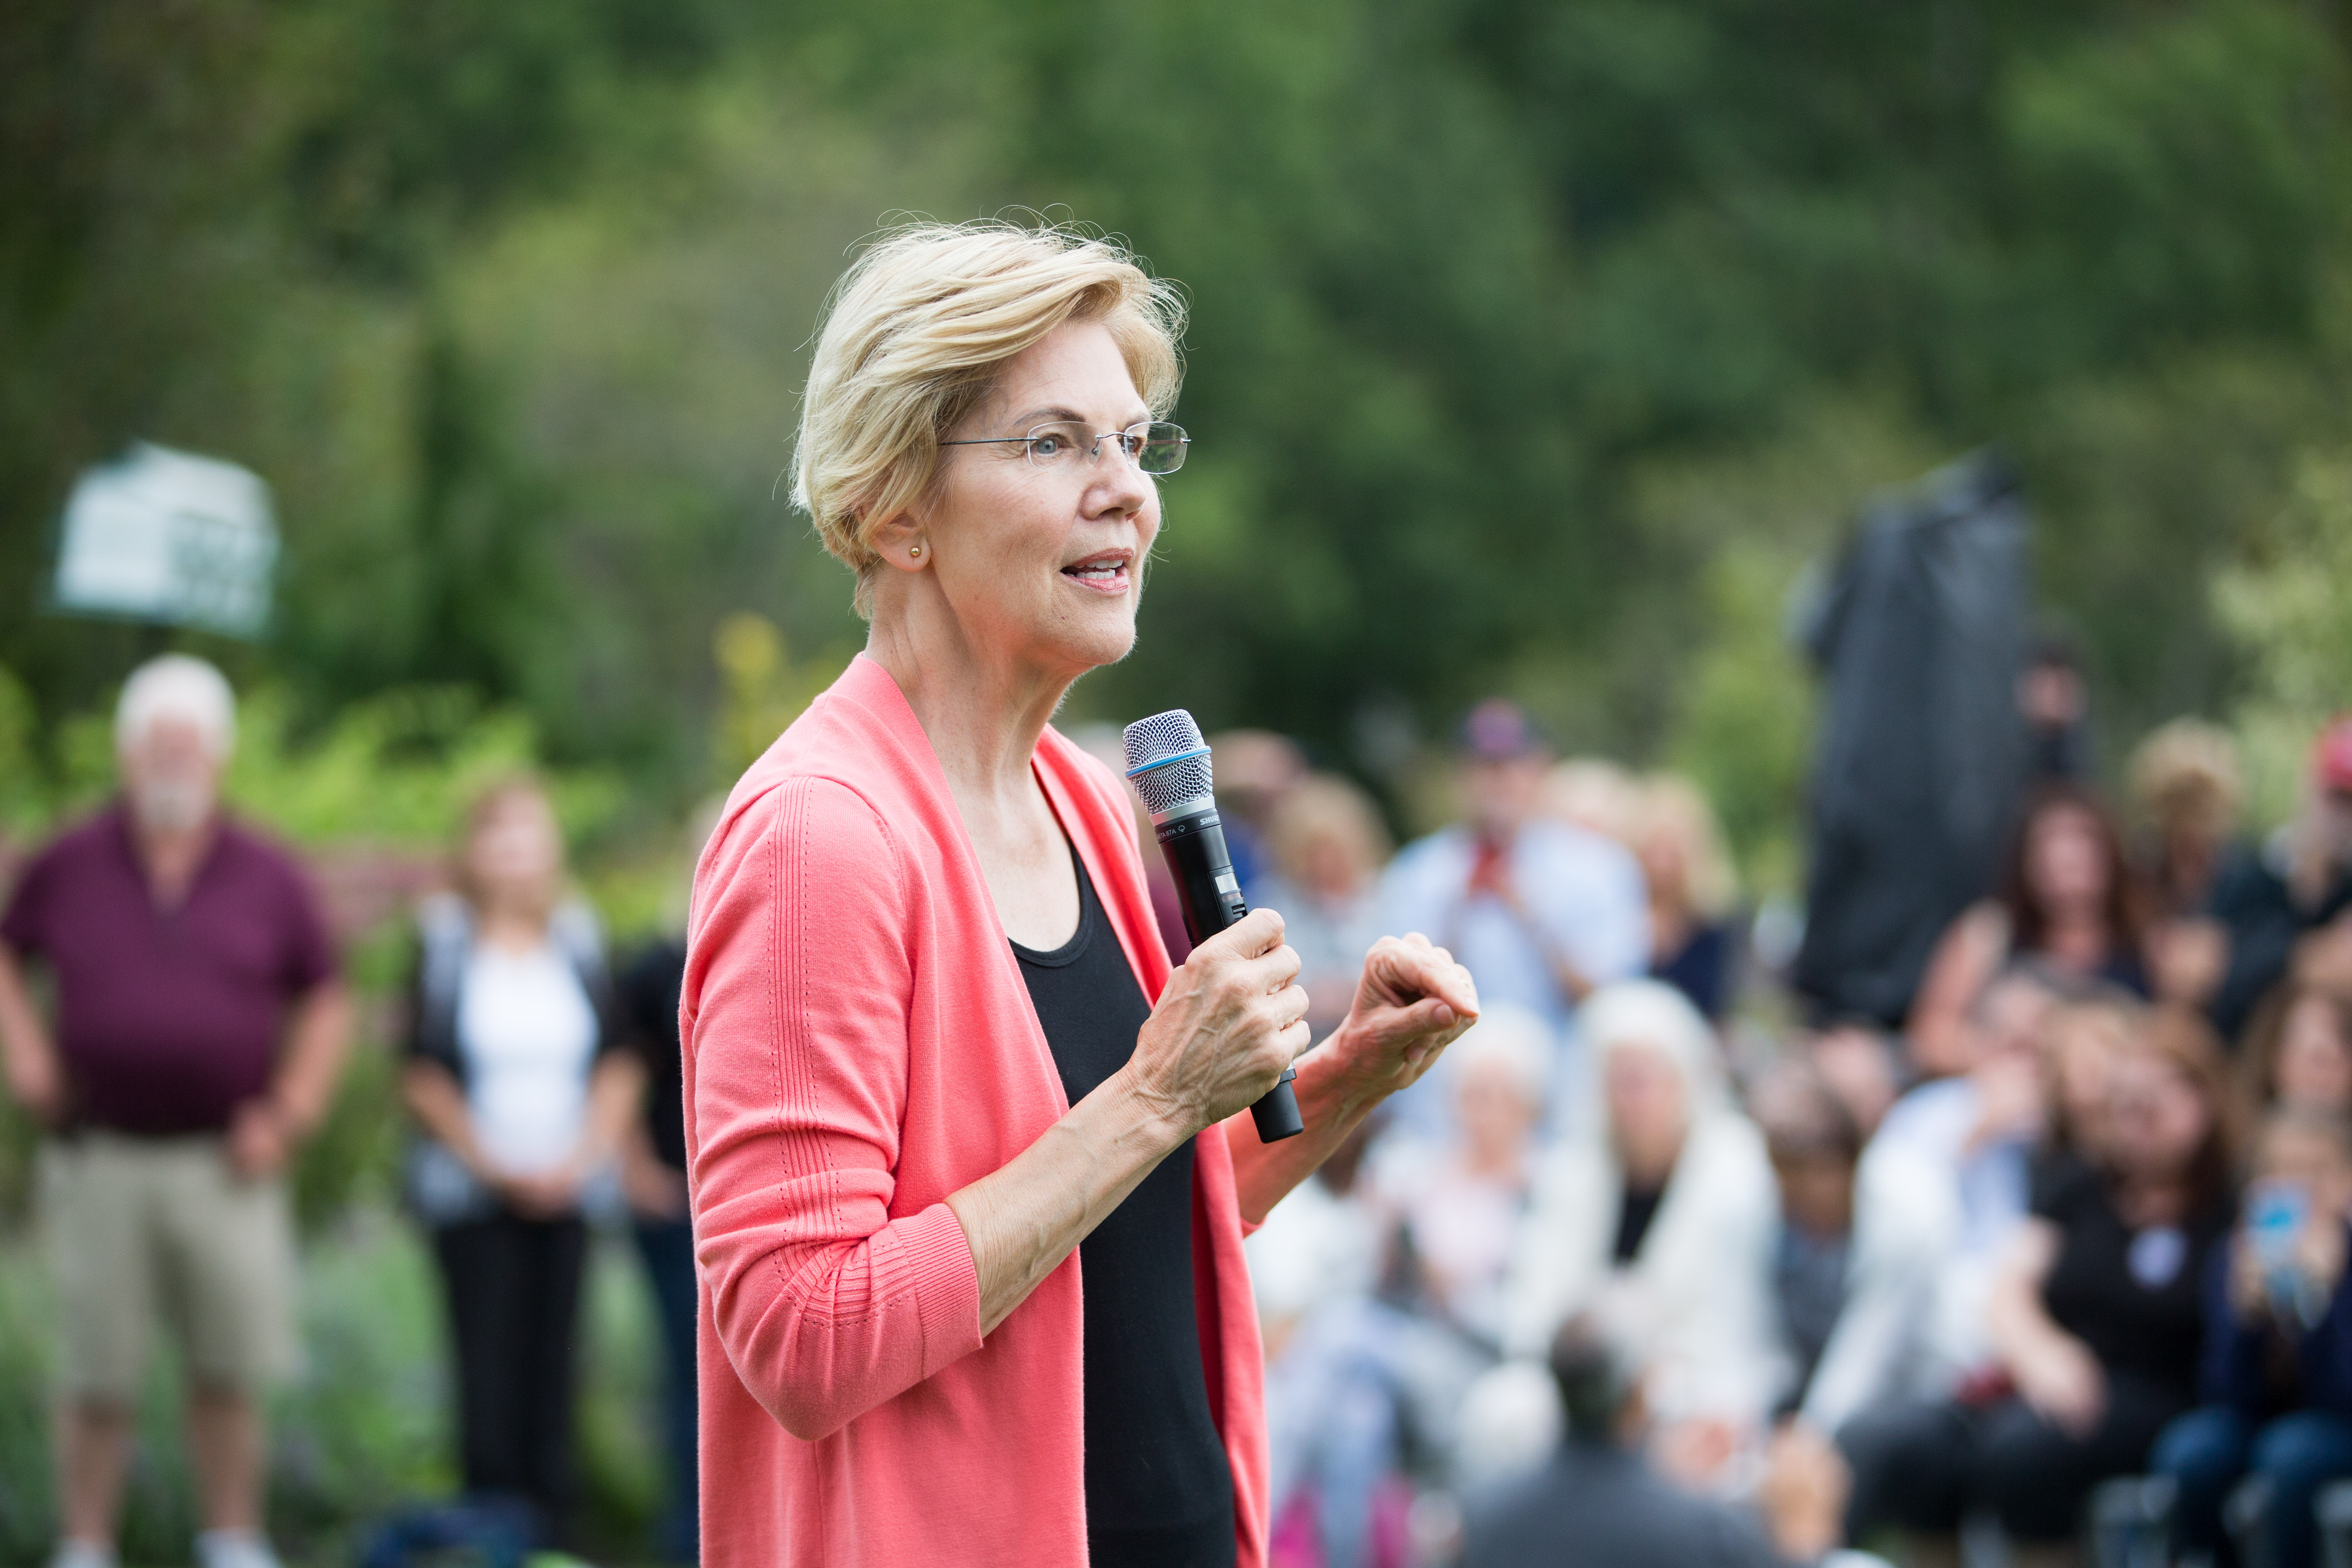 Elizabeth Warren's first priority as president: ending government corruption